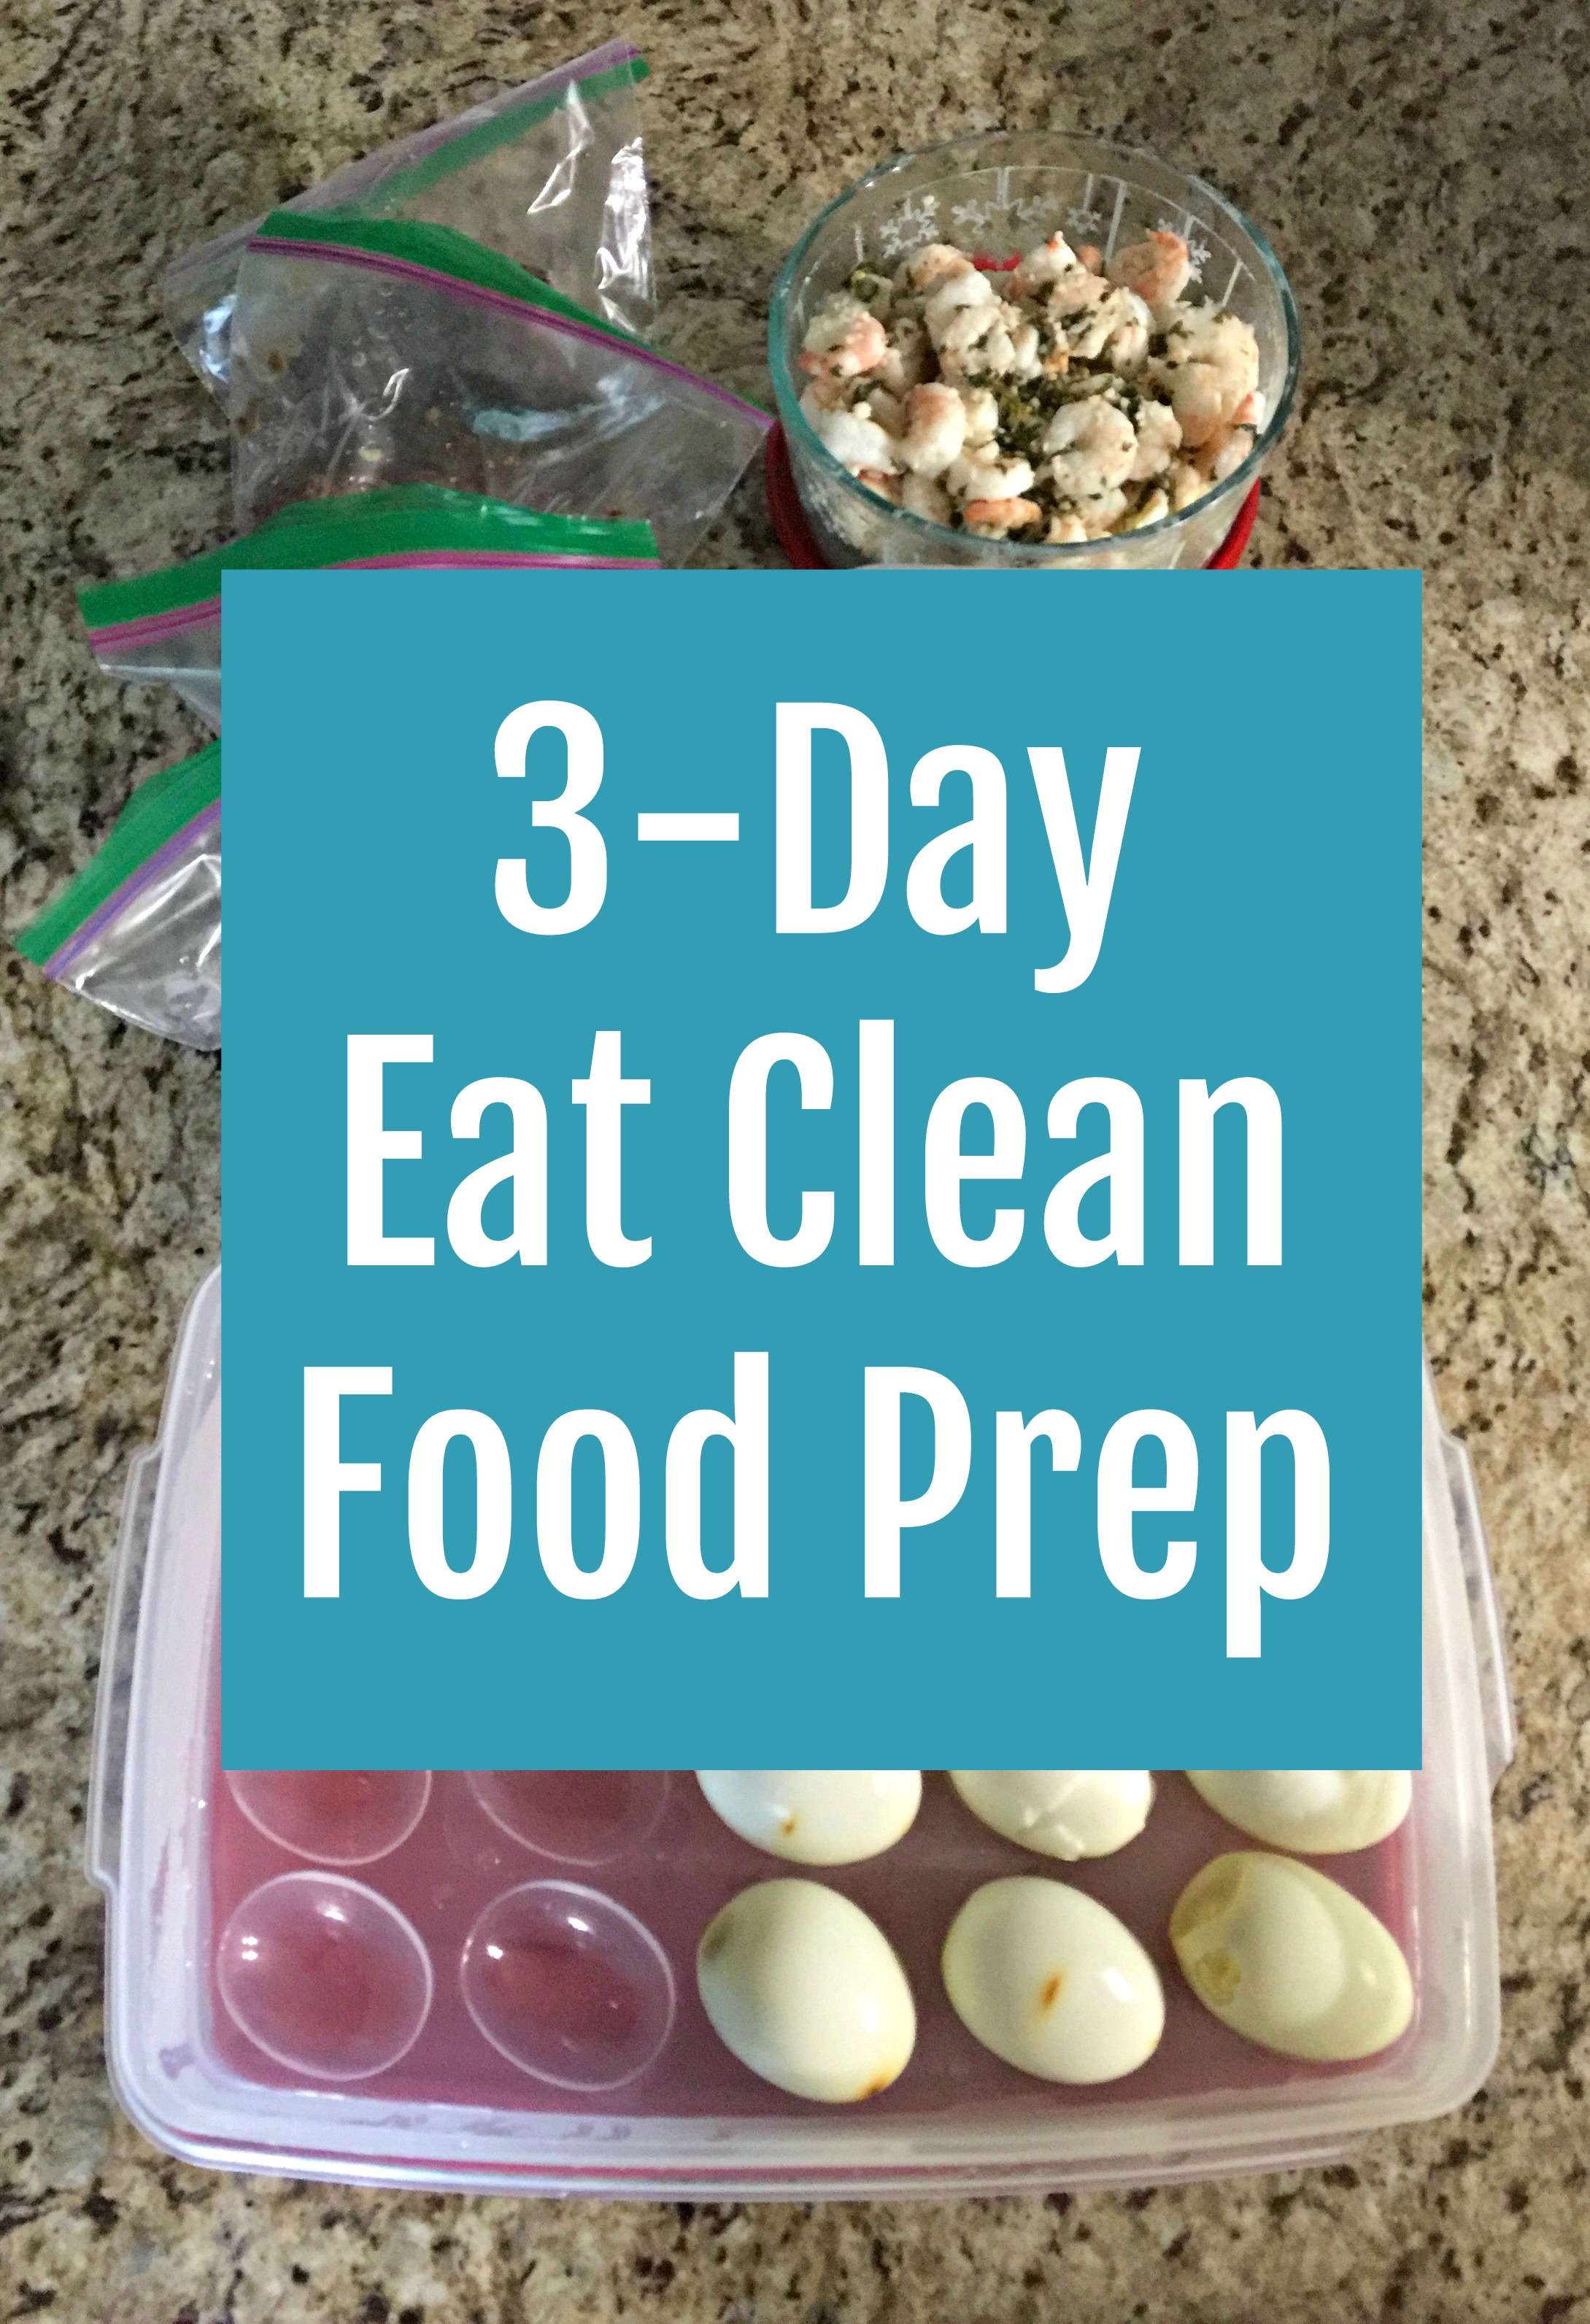 3-Day Eat Clean Food Prep